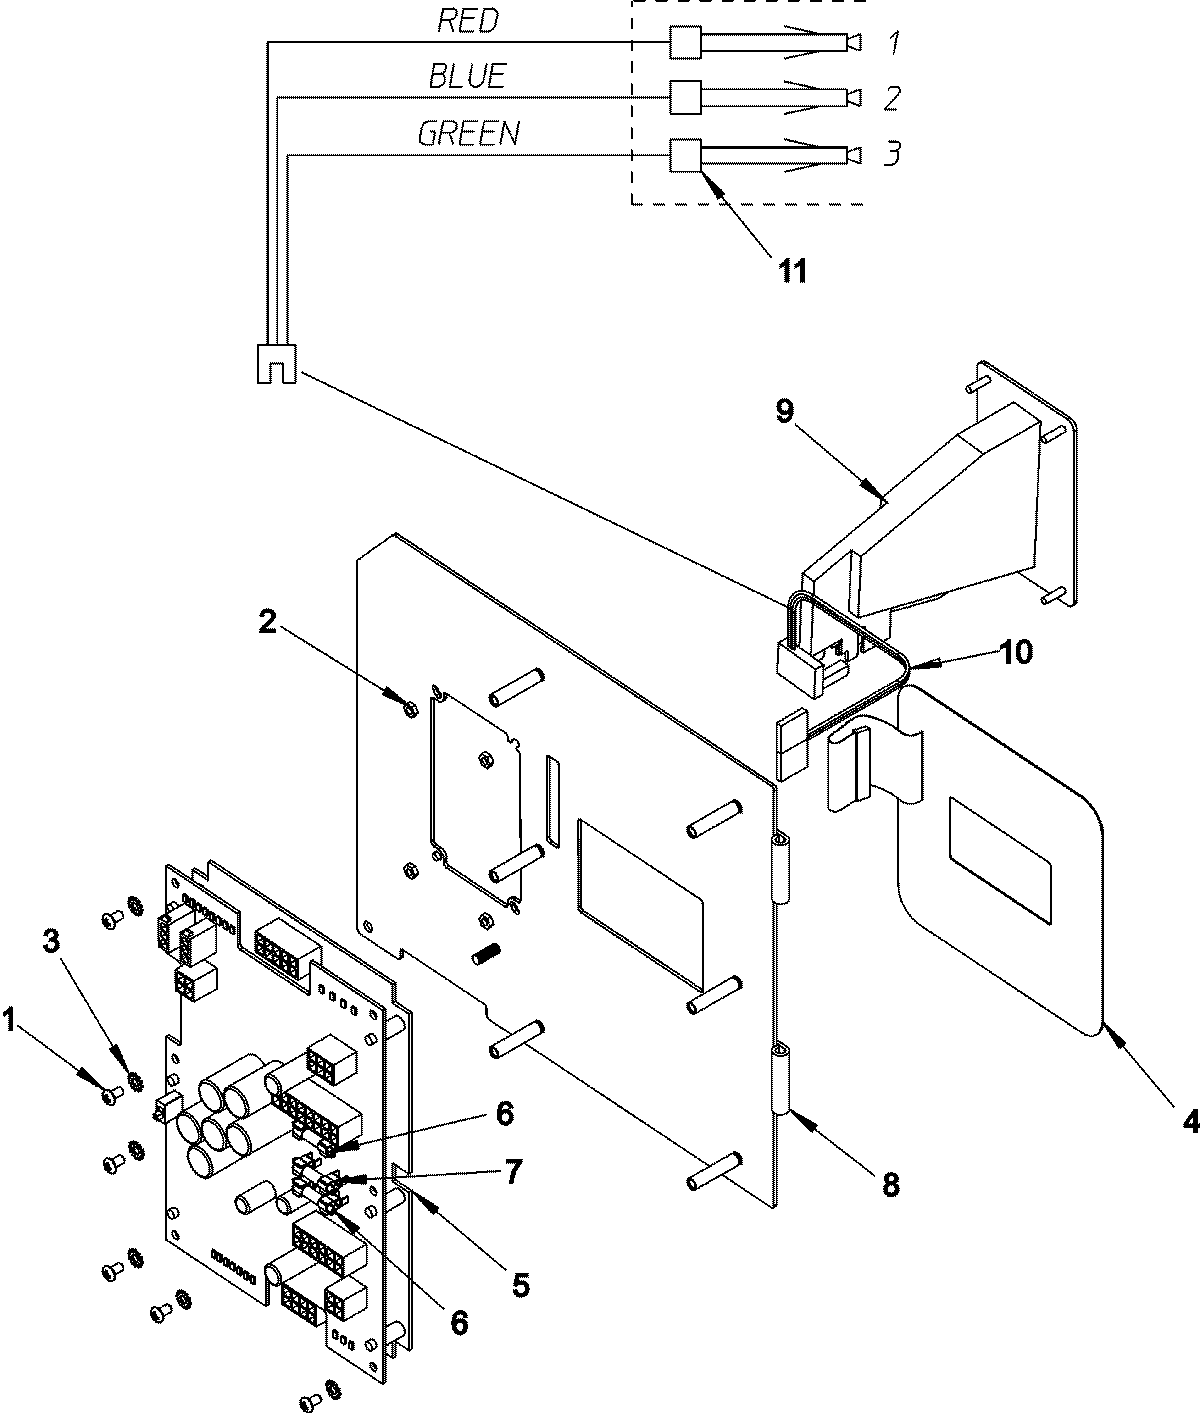 Atwood 8535-iv-dclp Wiring Diagram